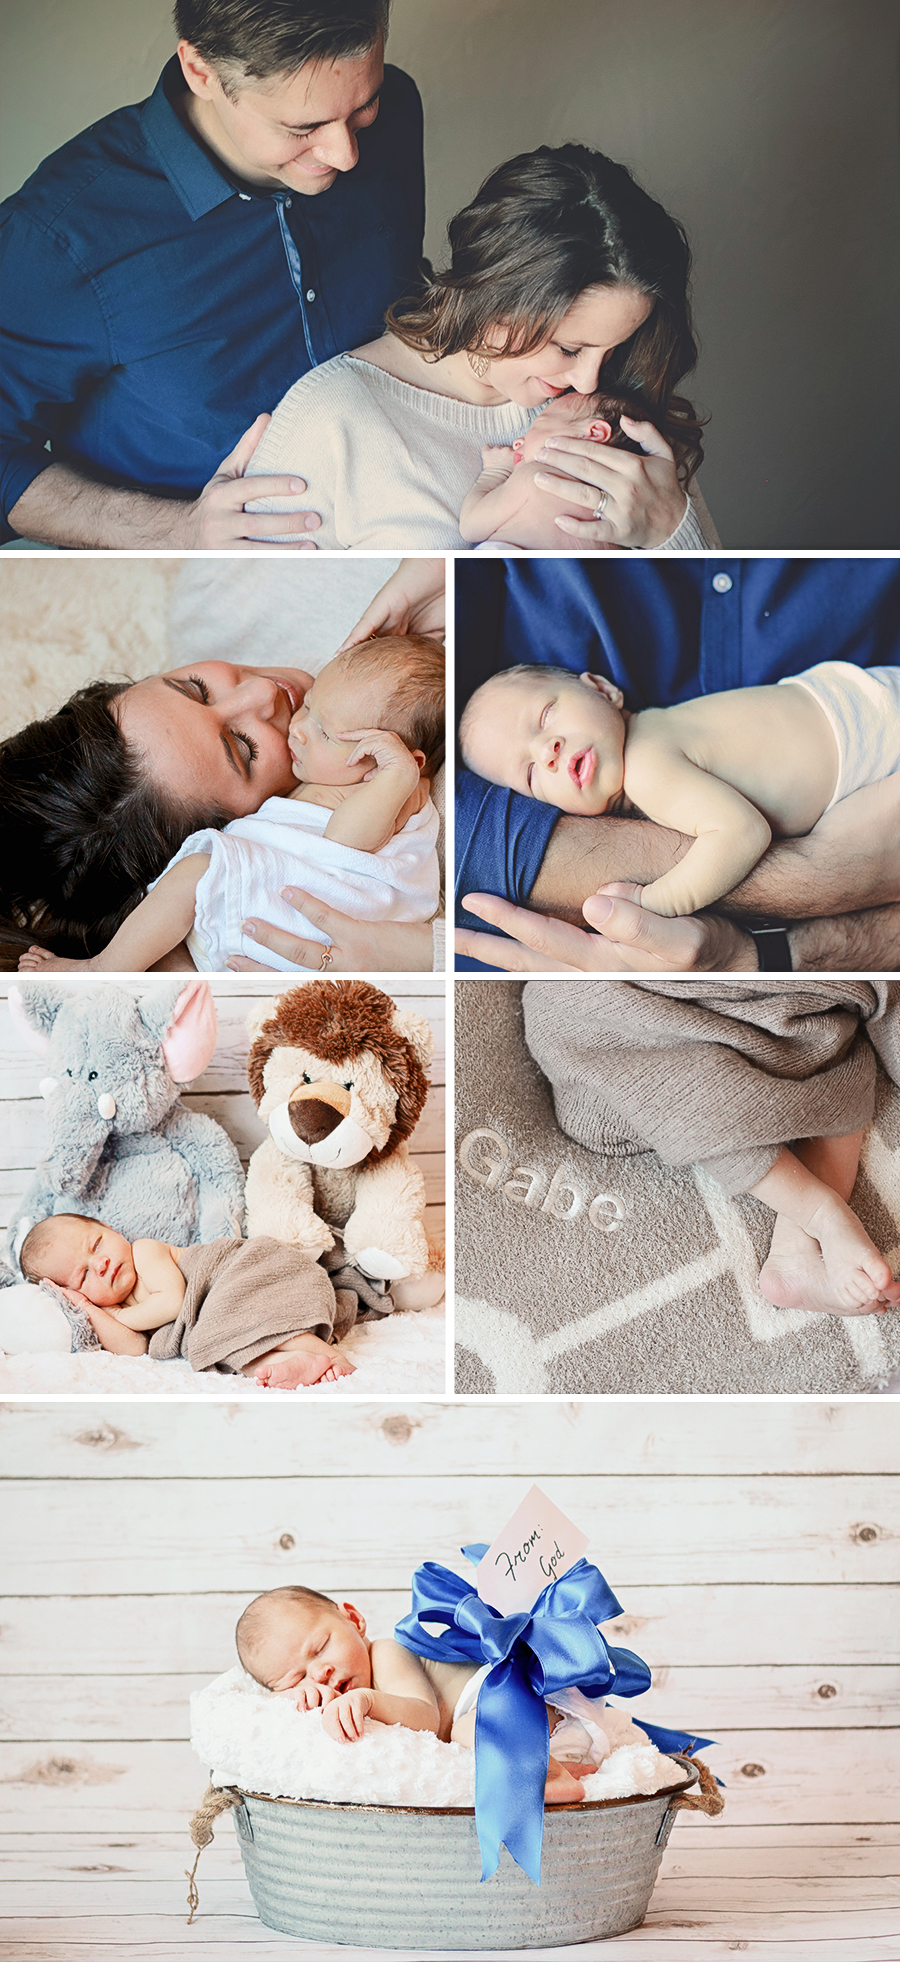 DFW Newborn Photographer Sarah Ware Photography